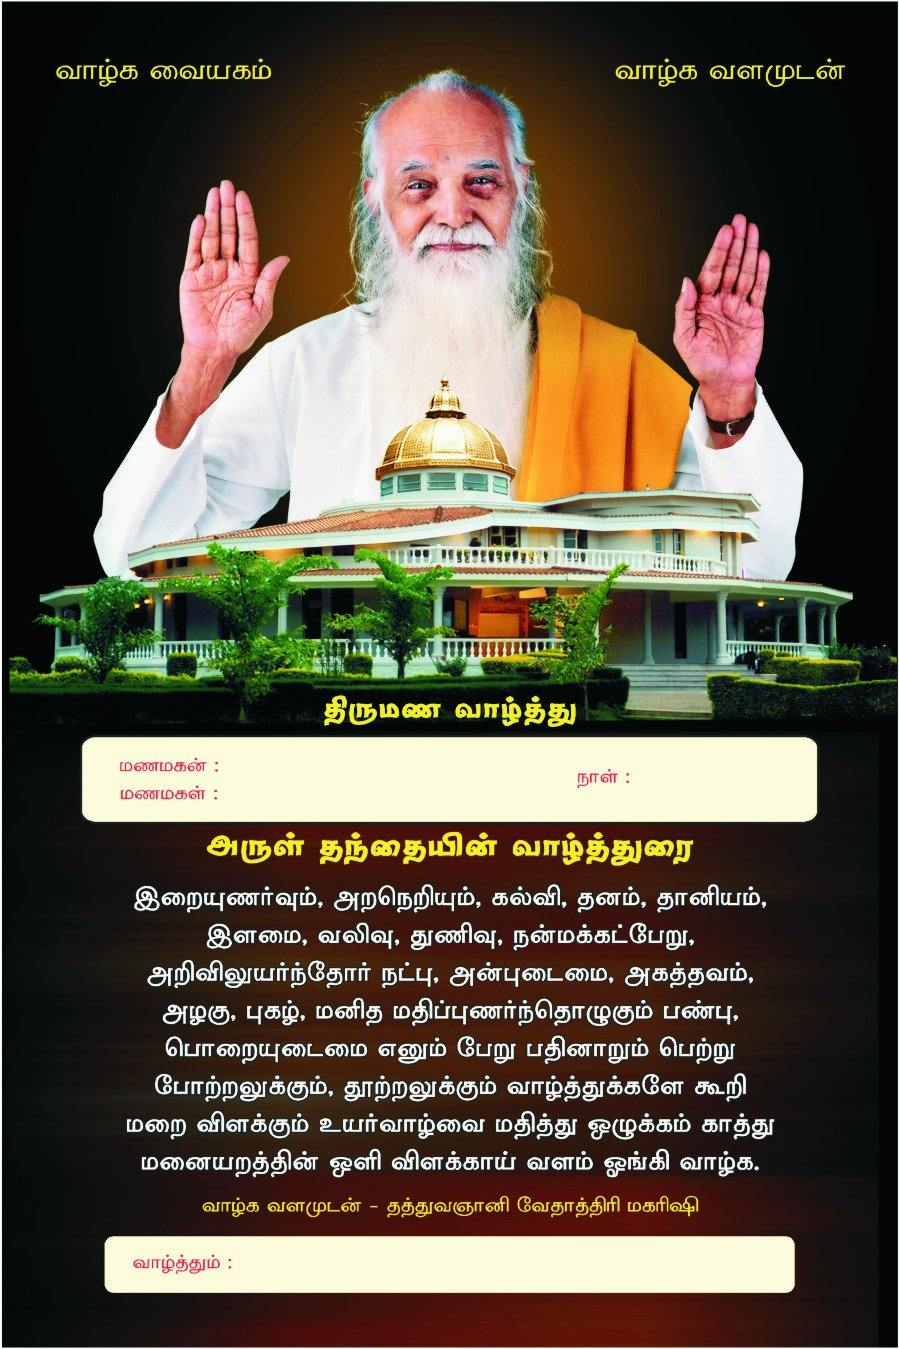 12x8 D Lamination Photo - Vethathiri Maharishi Store